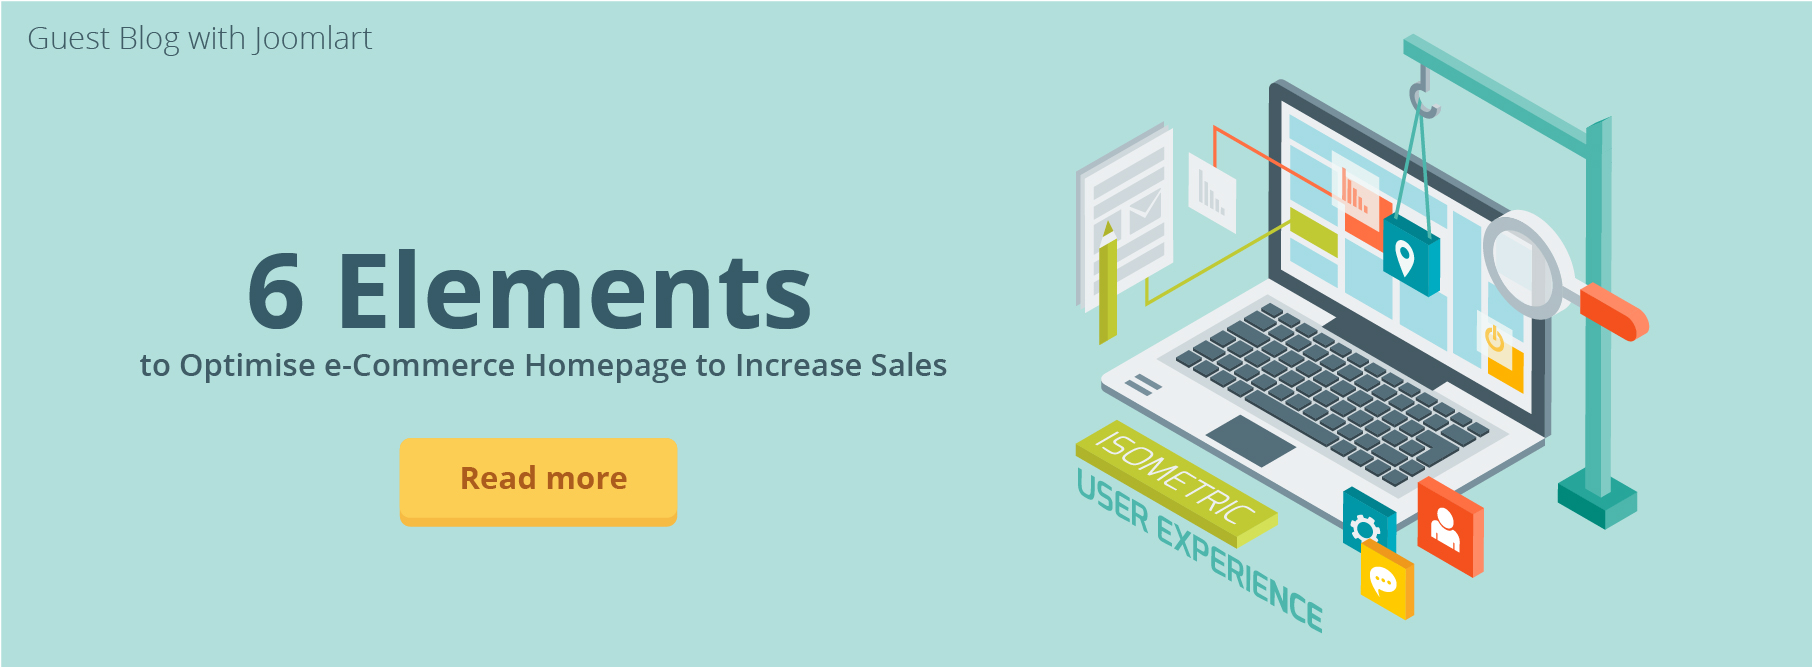 6 Elements to Optimise e-Commerce Homepage to Increase Sales